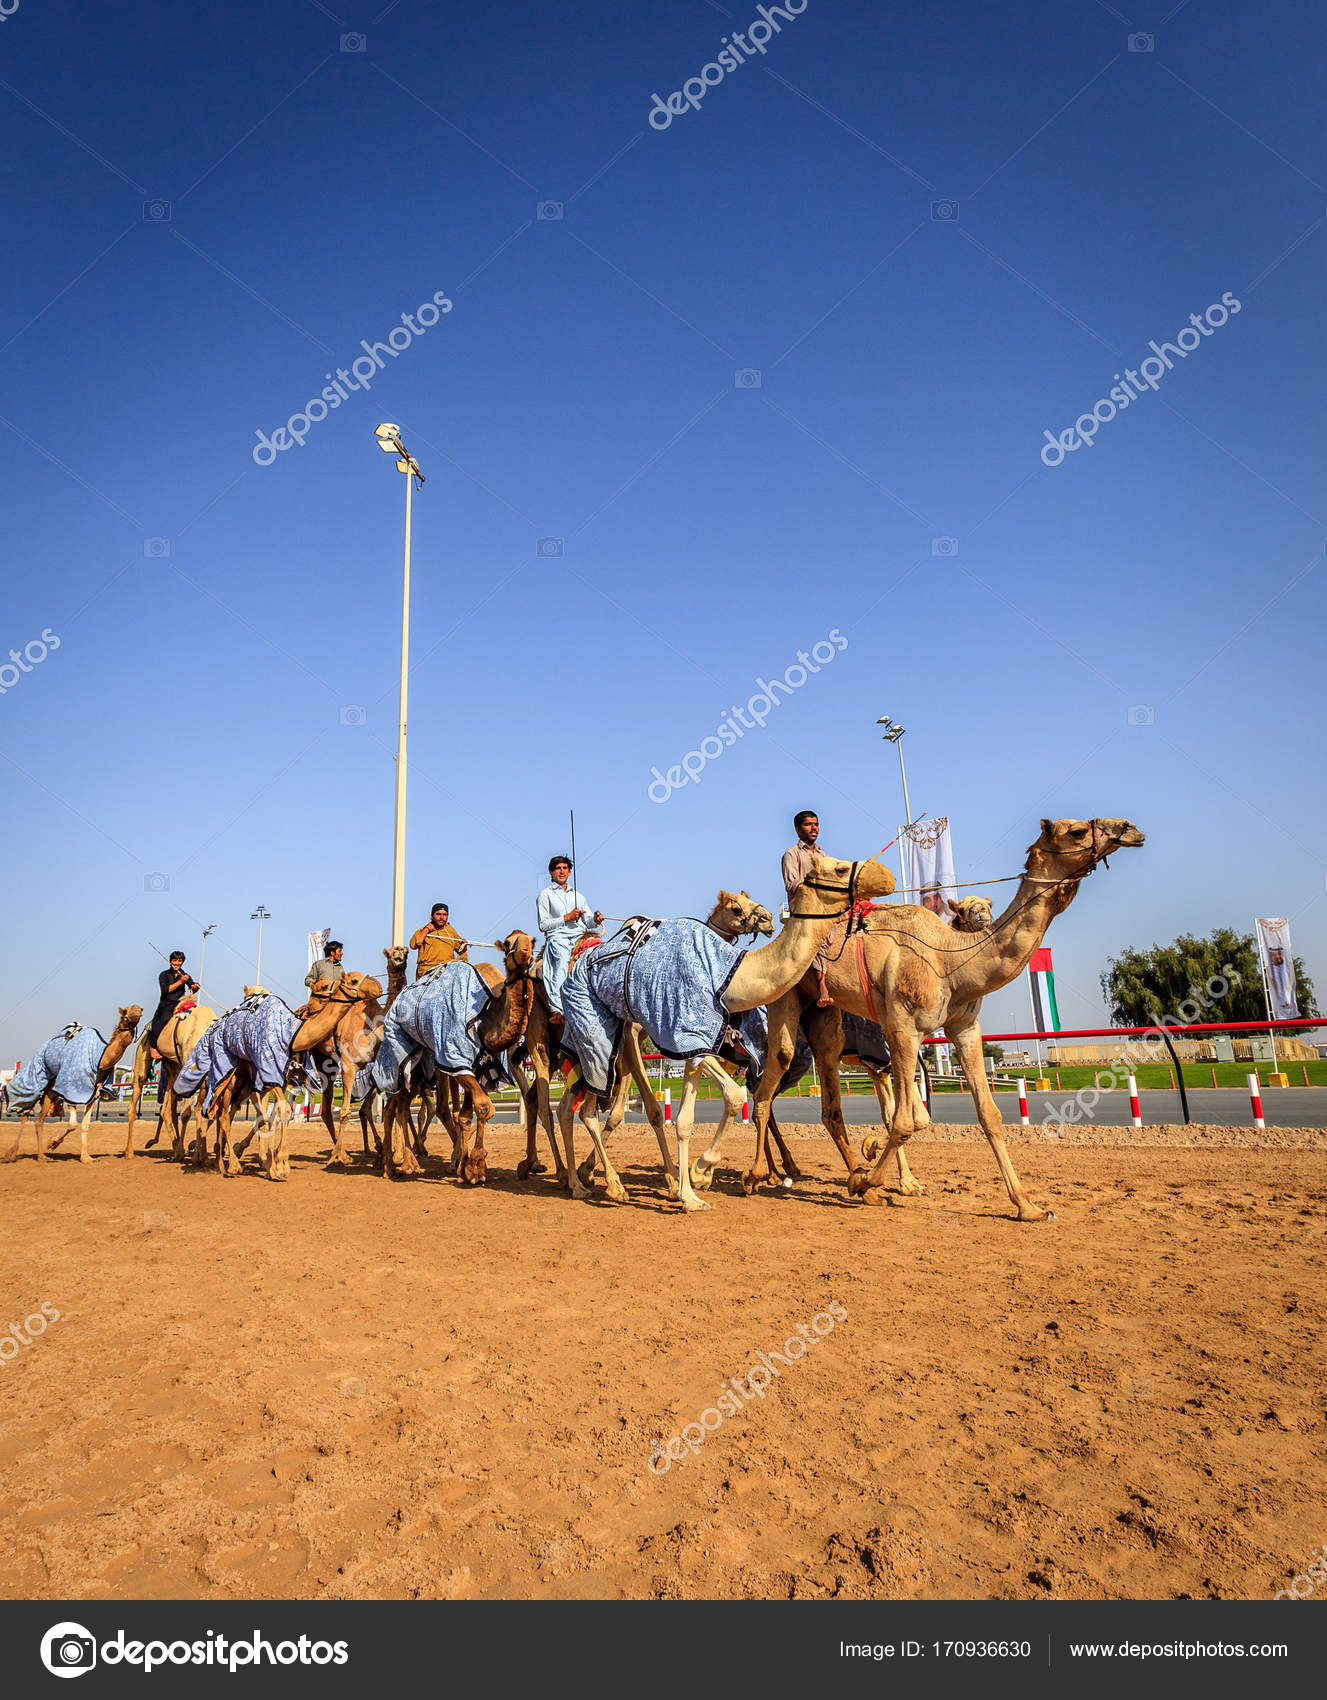 Camel racing in dubai stock editorial photo alexeys 170936630 dubai united arab emirates march 25 2016 practicing for camel racing at dubai camel racing club al marmoom uae photo by alexeys thecheapjerseys Image collections